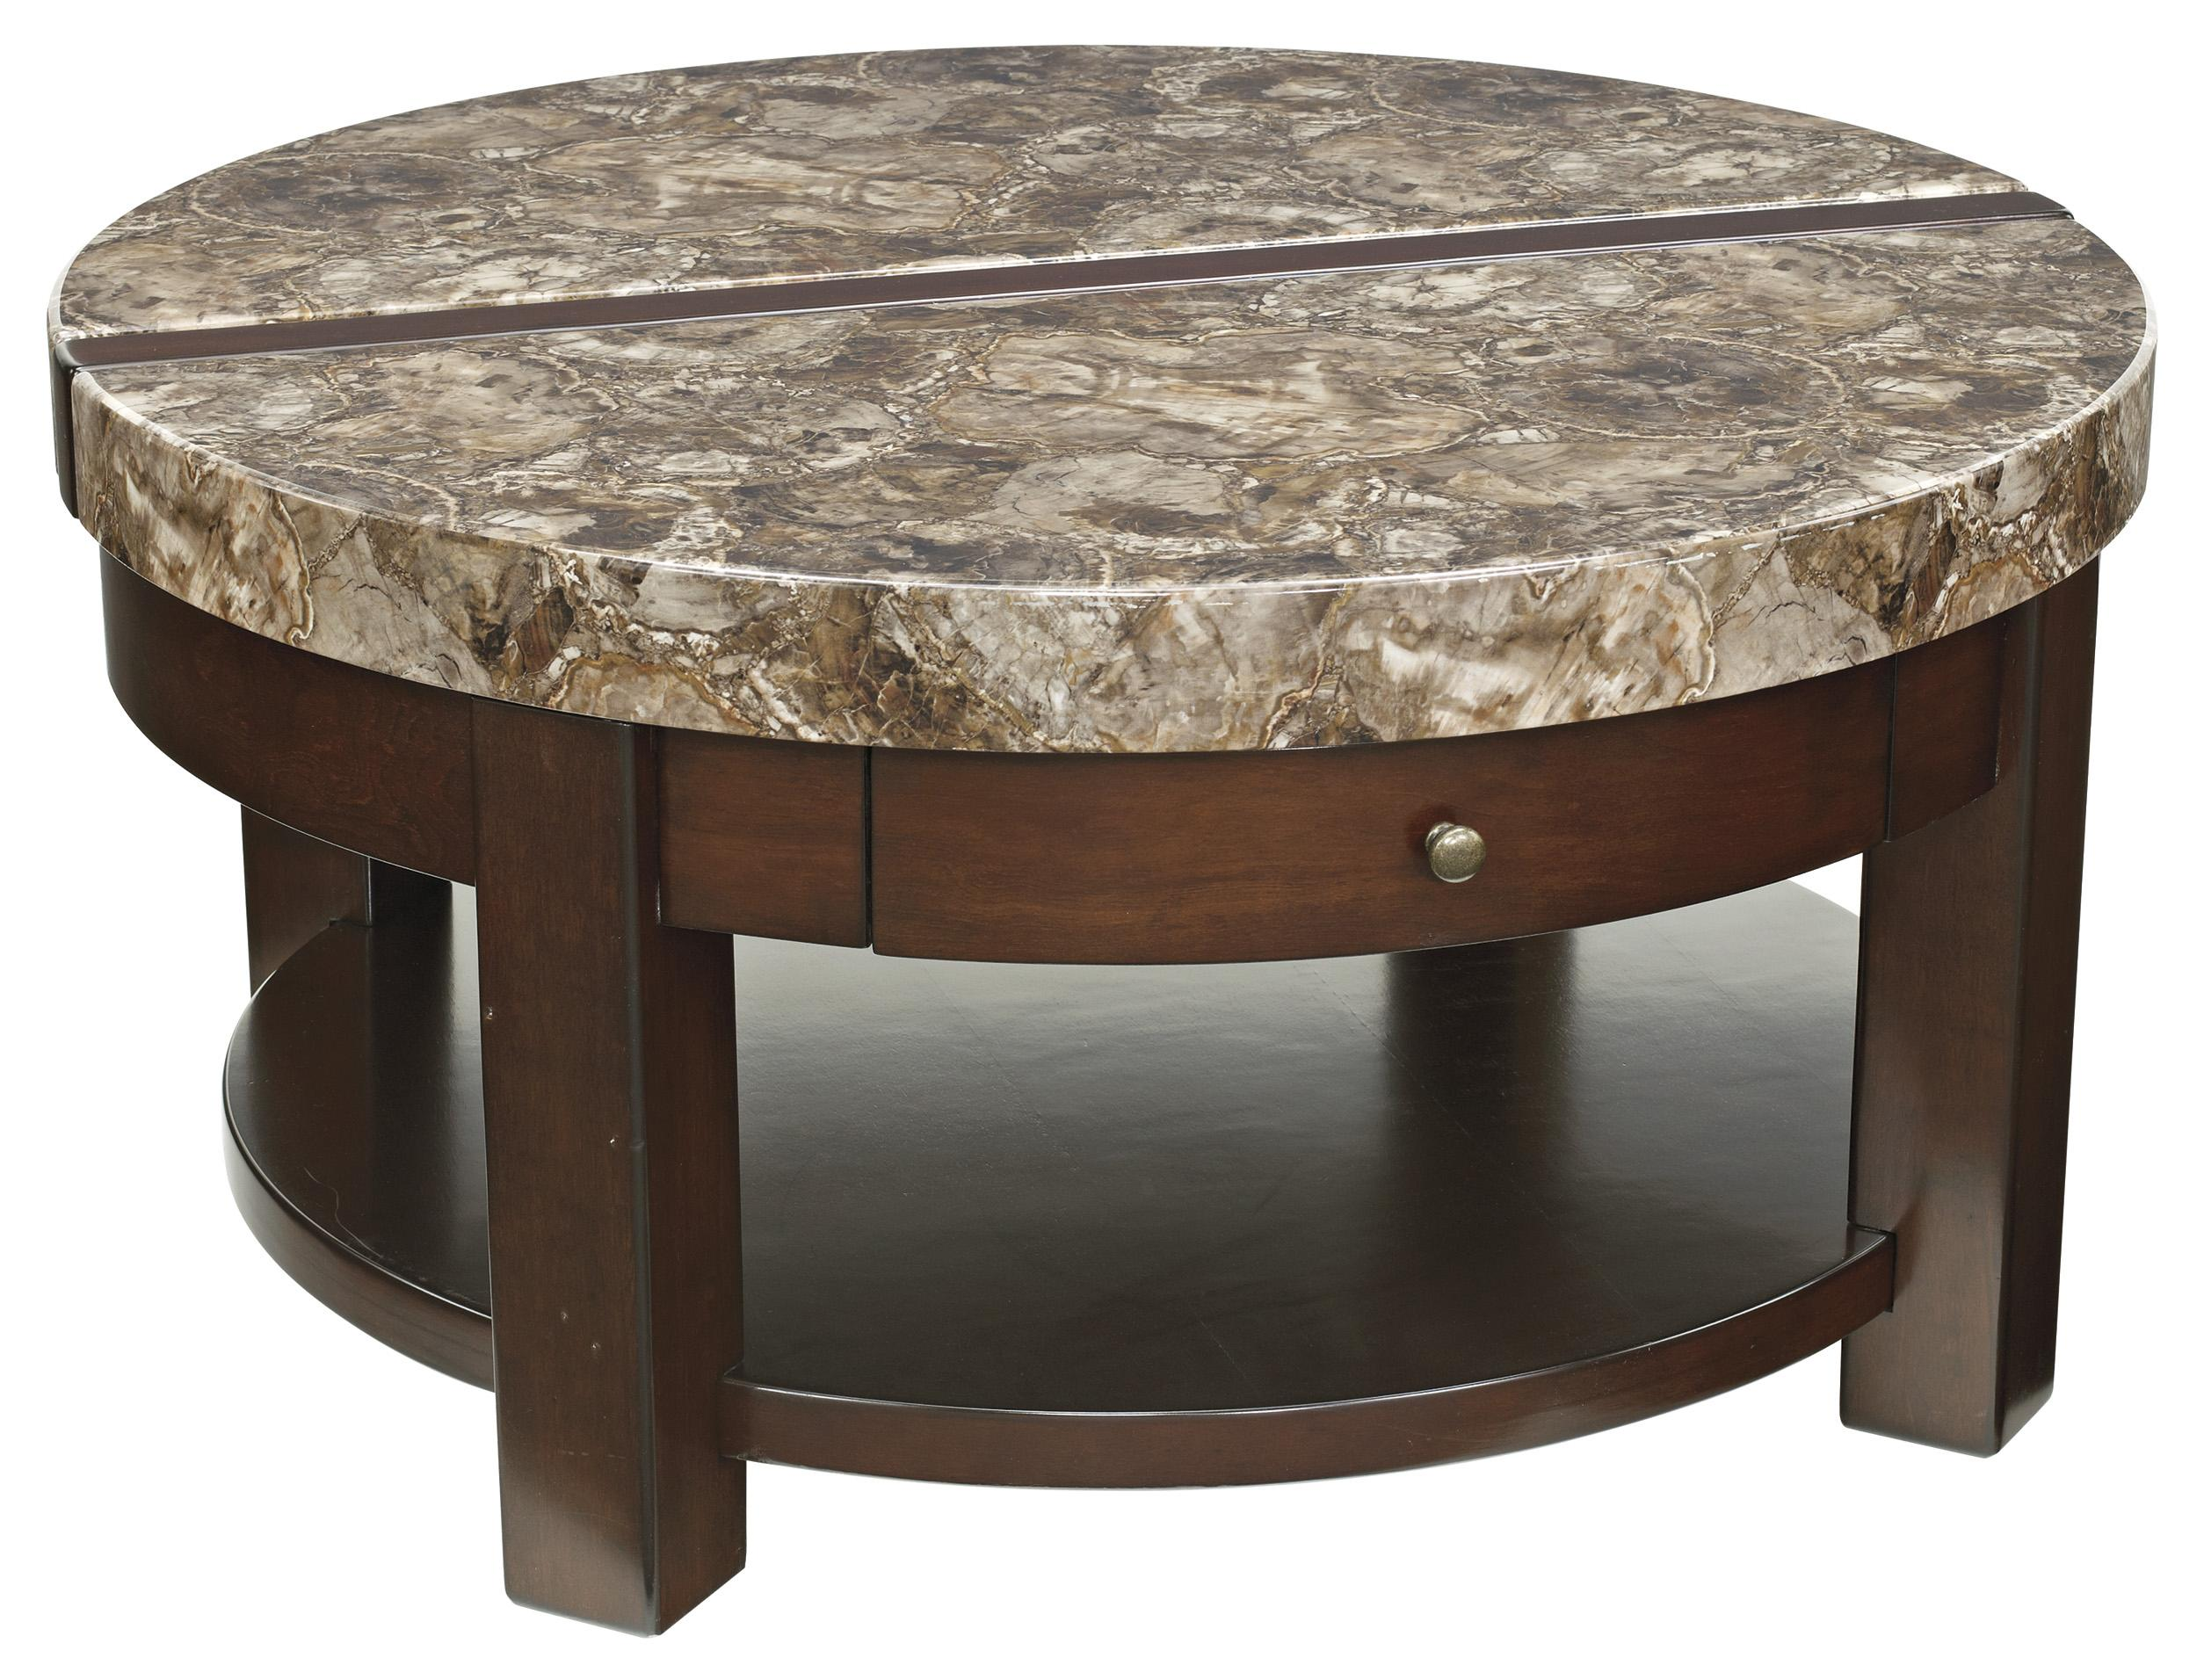 Signature Design by Ashley Kraleene Round Lift Top Cocktail Table - Item Number: T687-8